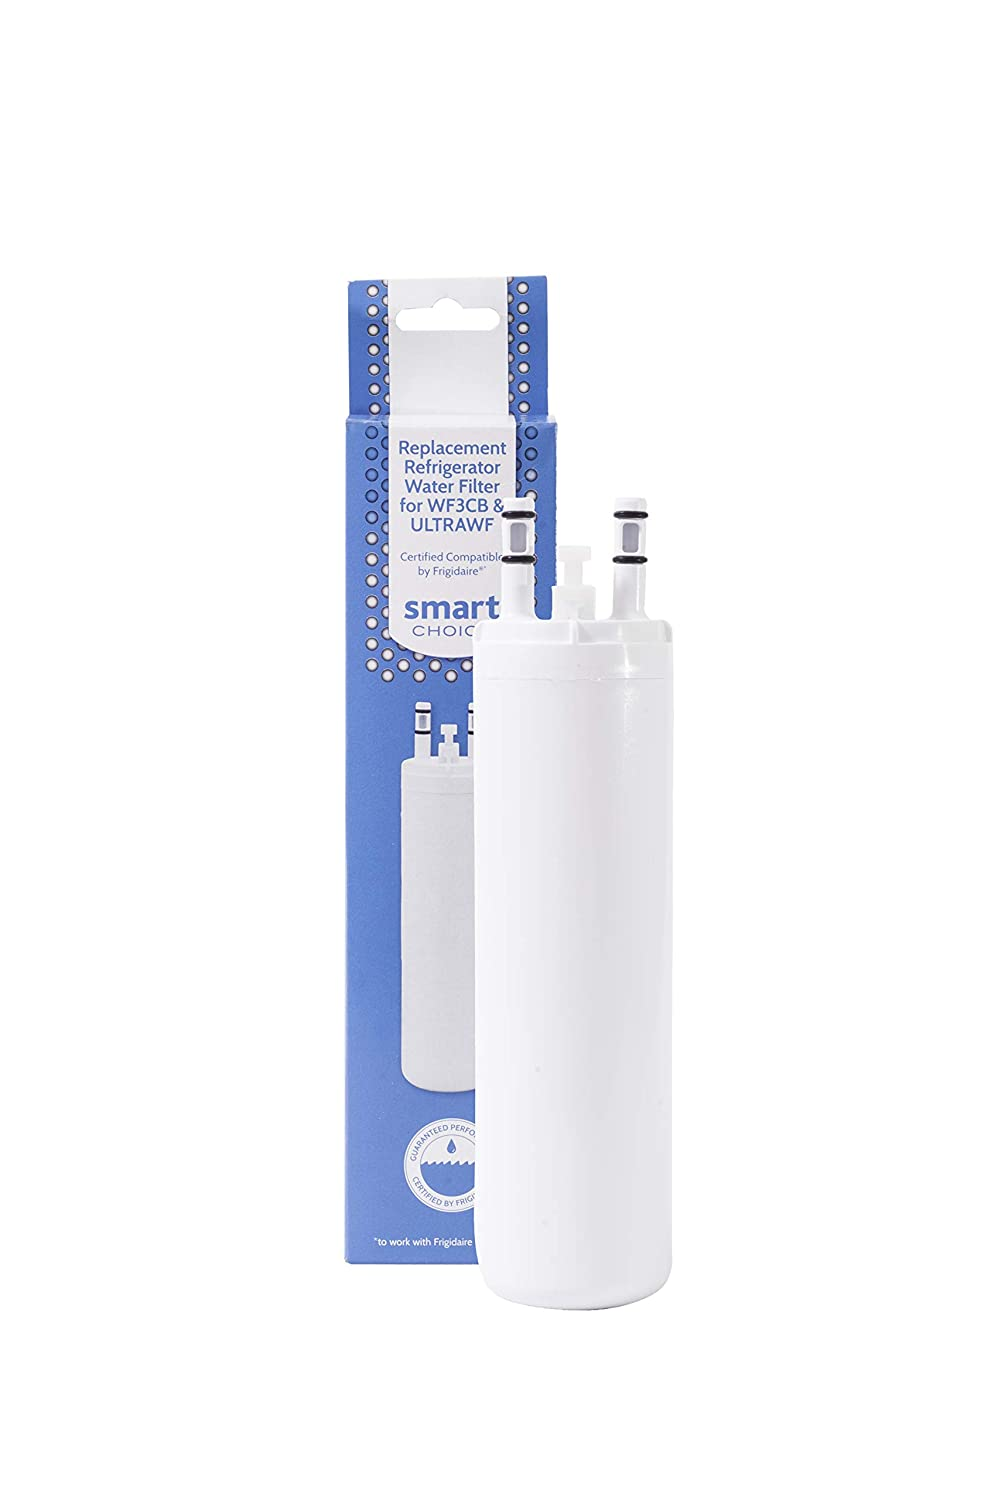 Smart Choice Replacement Water Filter SCWF3CTO for Frigidaire PureSource and Electrolux PureAdvantage Refrigerators